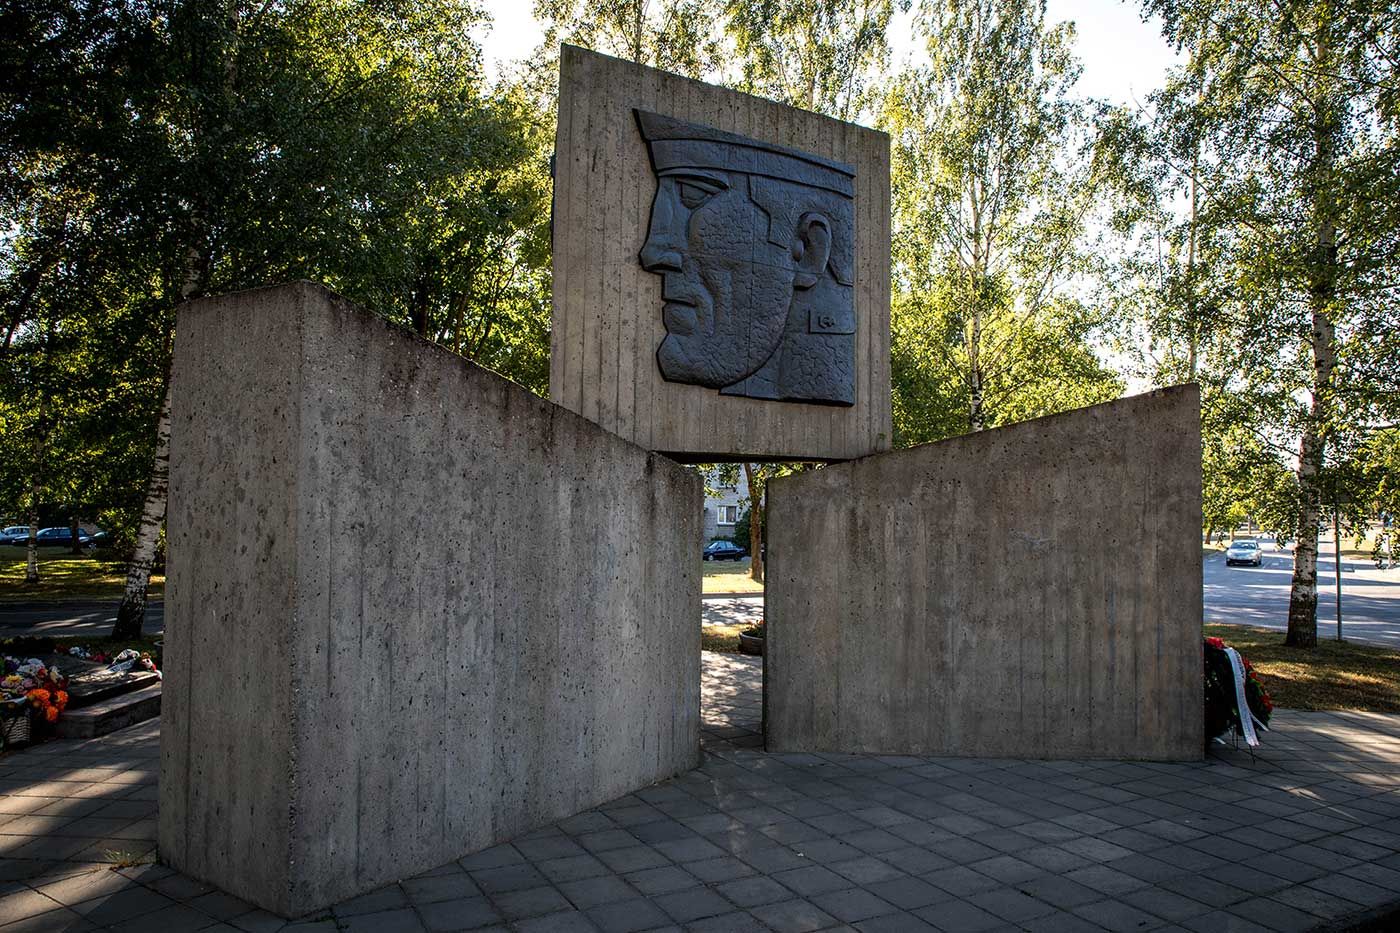 A monument to the Soviet army, depicting the faces of a soldier, pilot, and sailor.